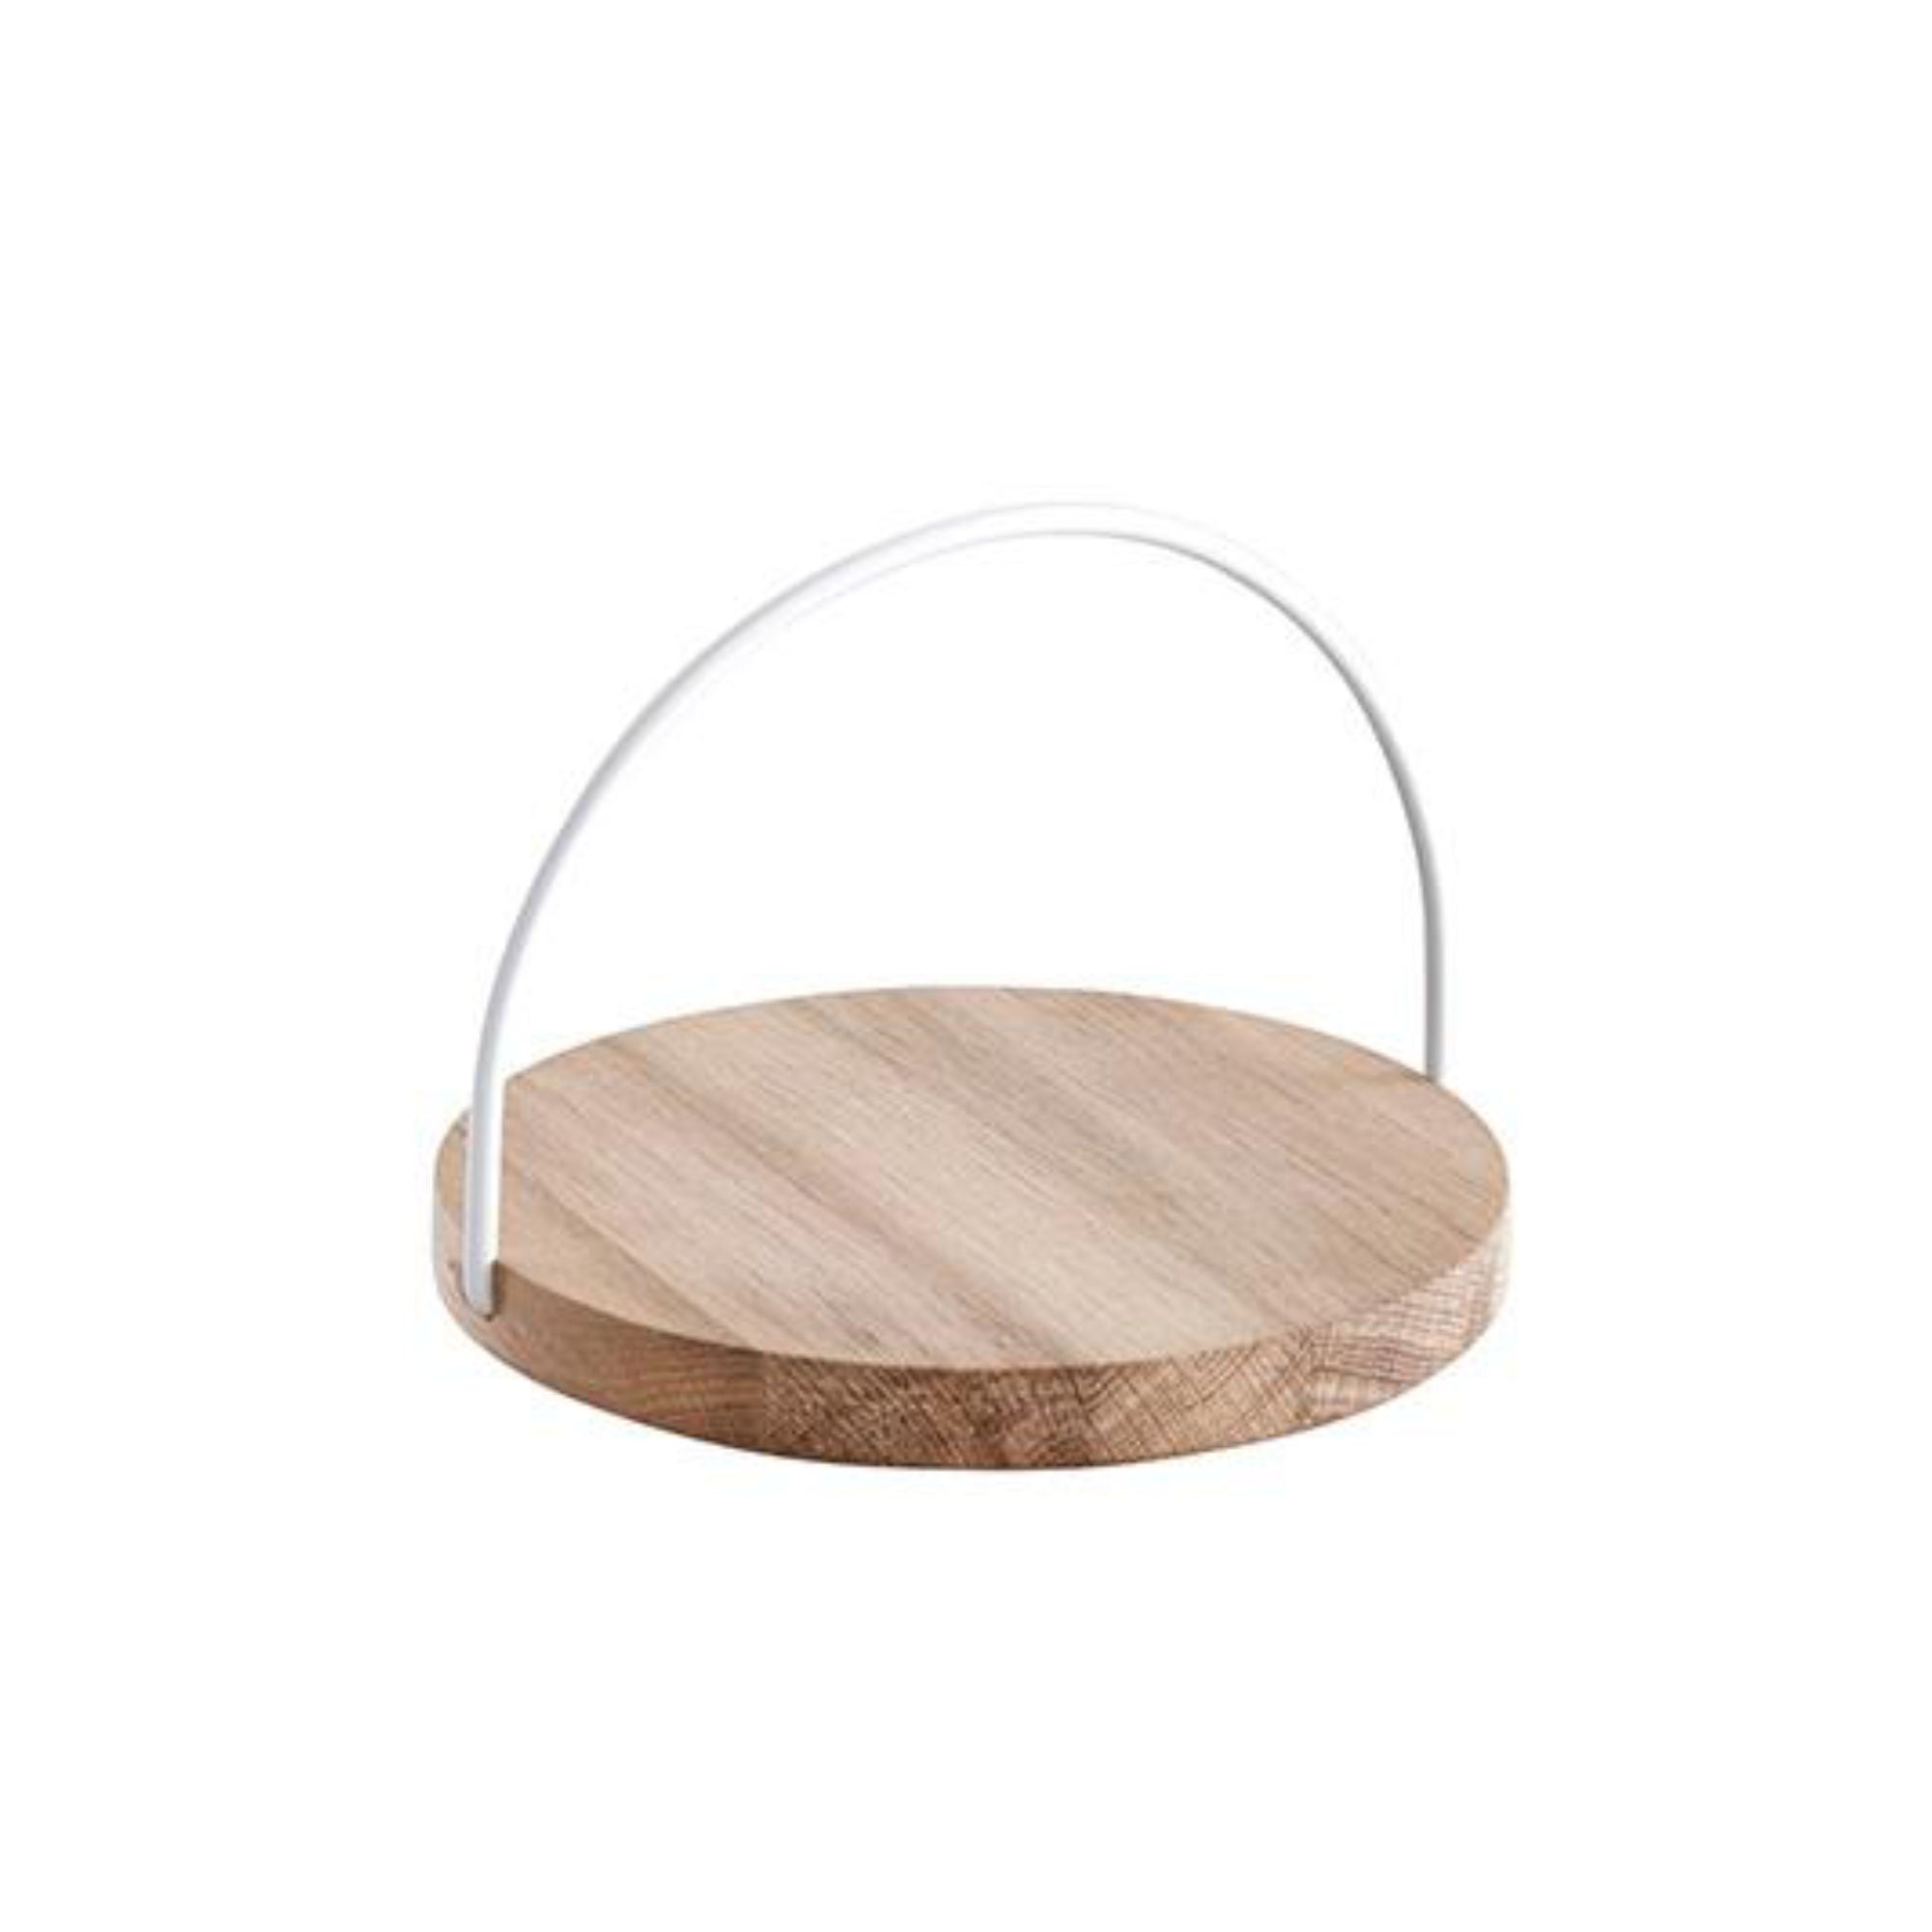 Woud Loop Tray Small , White Handle